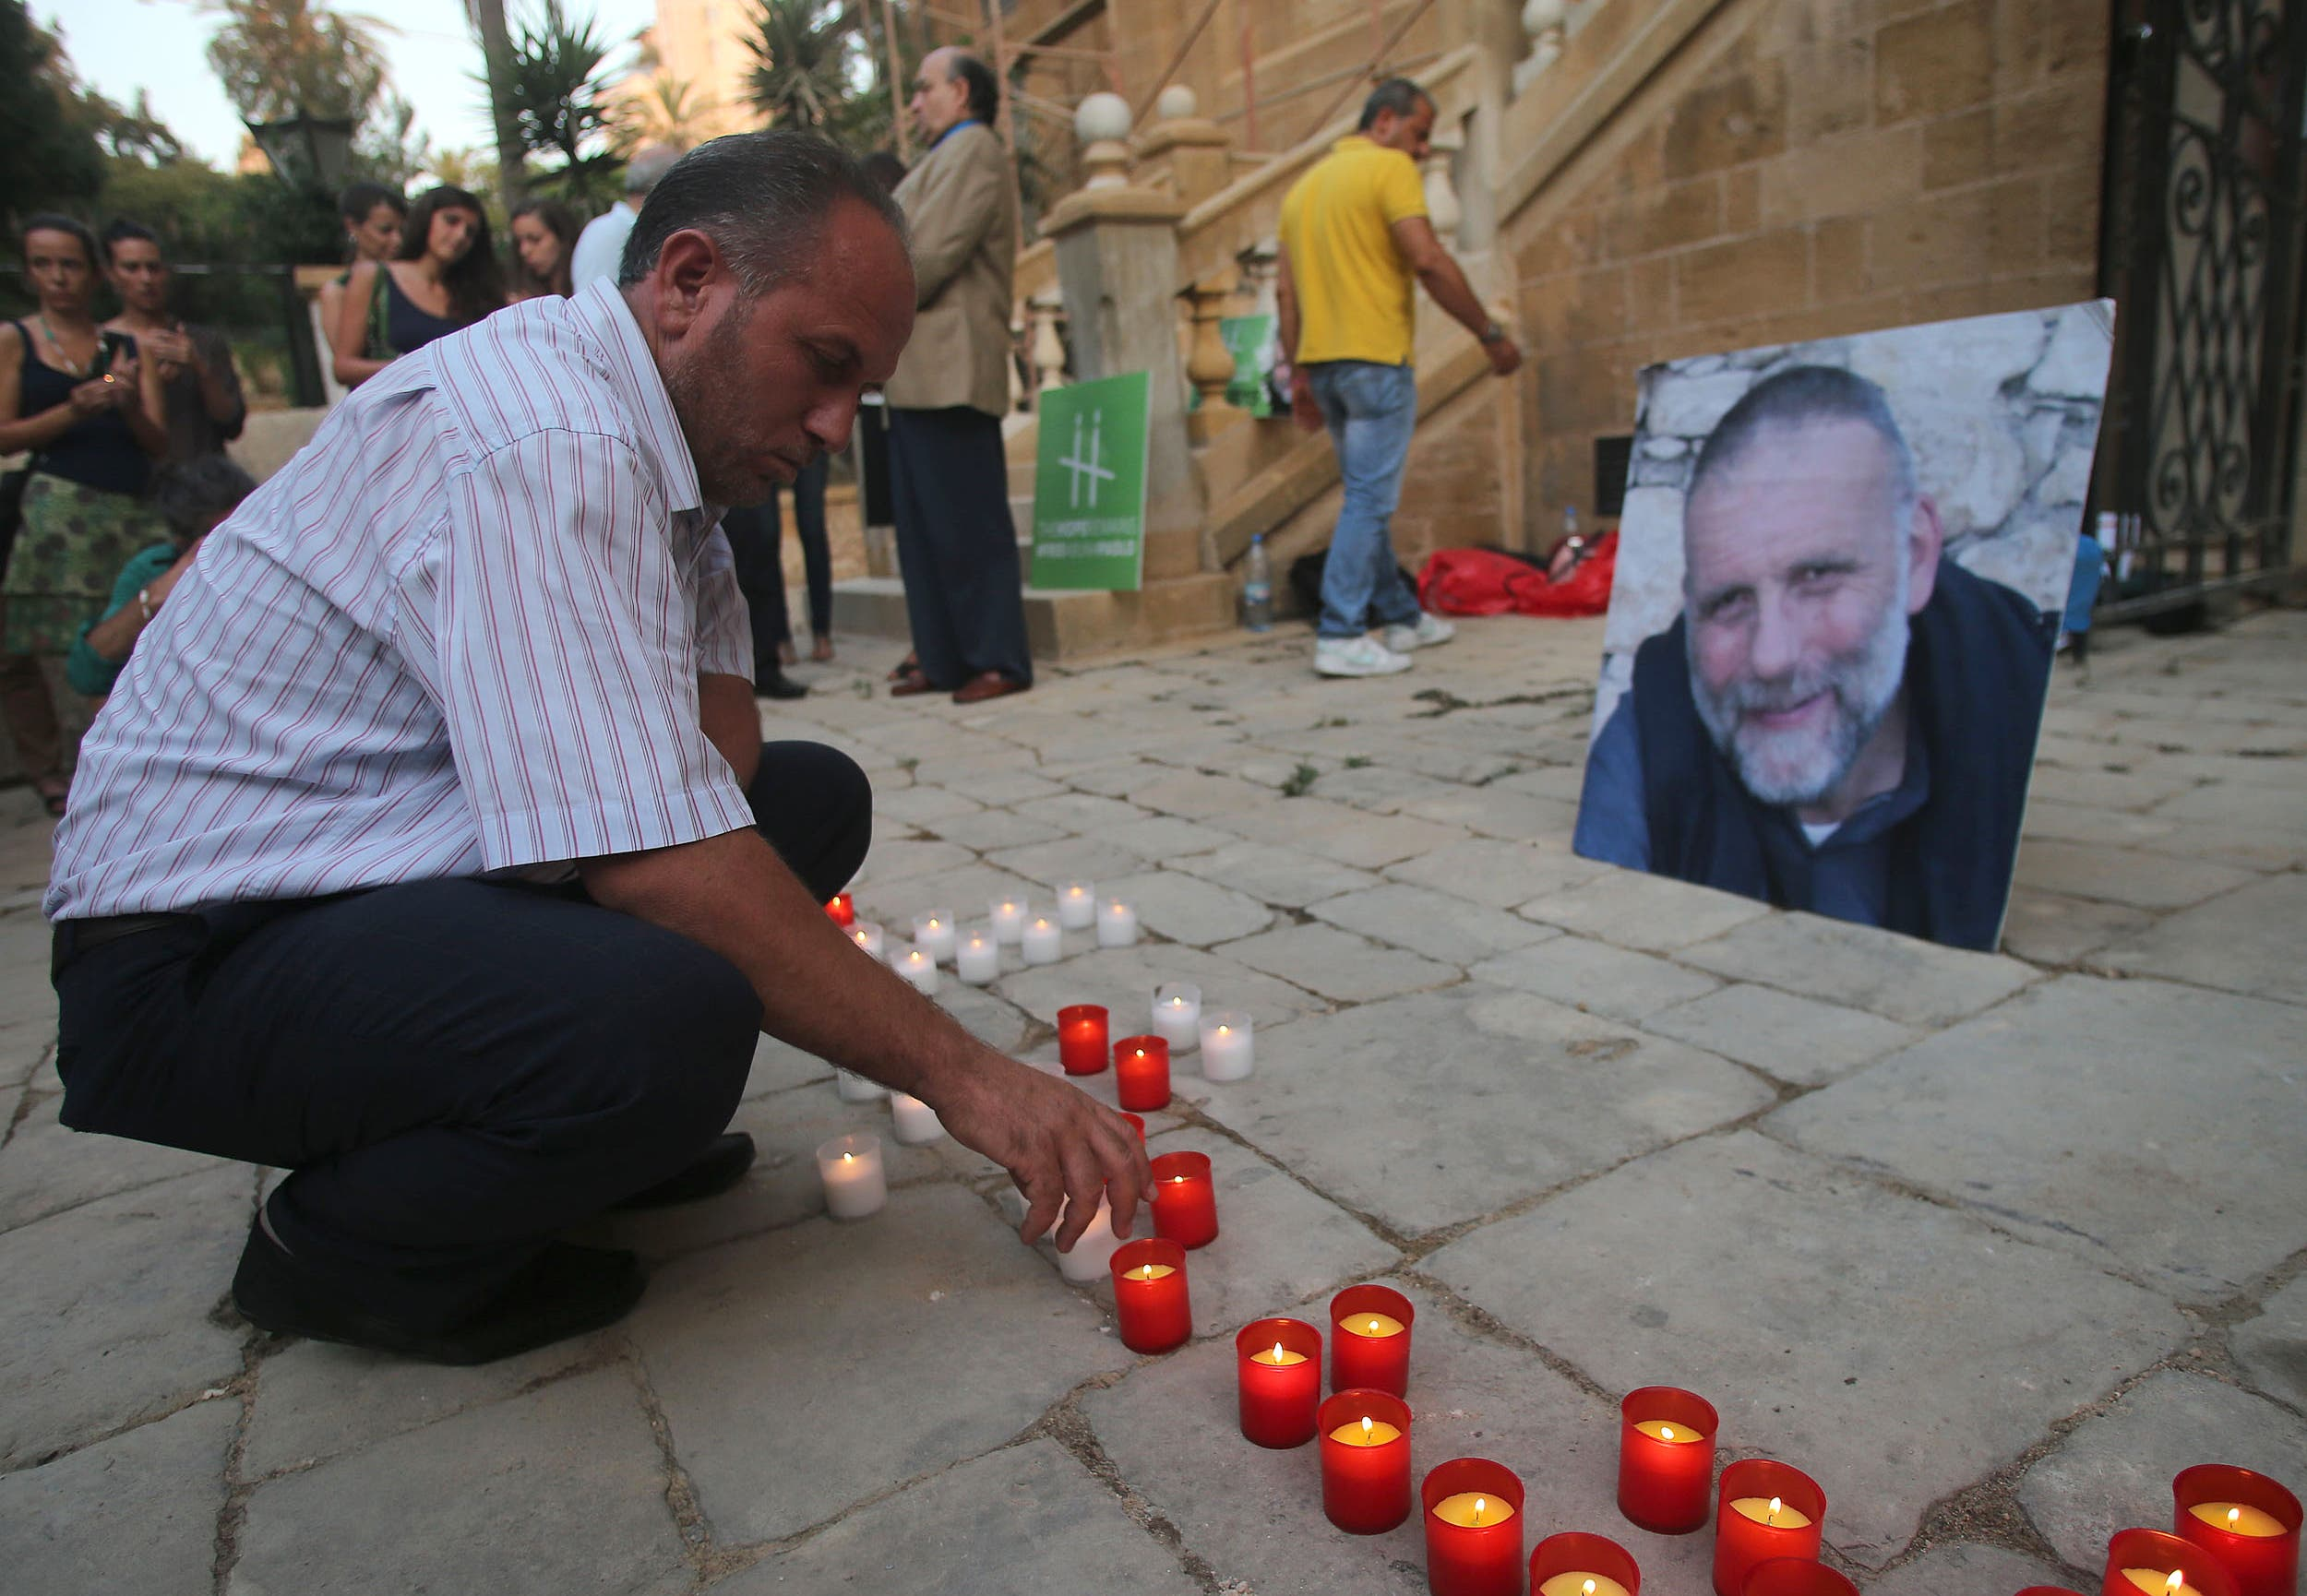 A man places a candle during a vigil in solidarity with Italian Jesuit priest Father Paolo Dall'Oglio on July 29, 2015 in Beirut. (AFP)